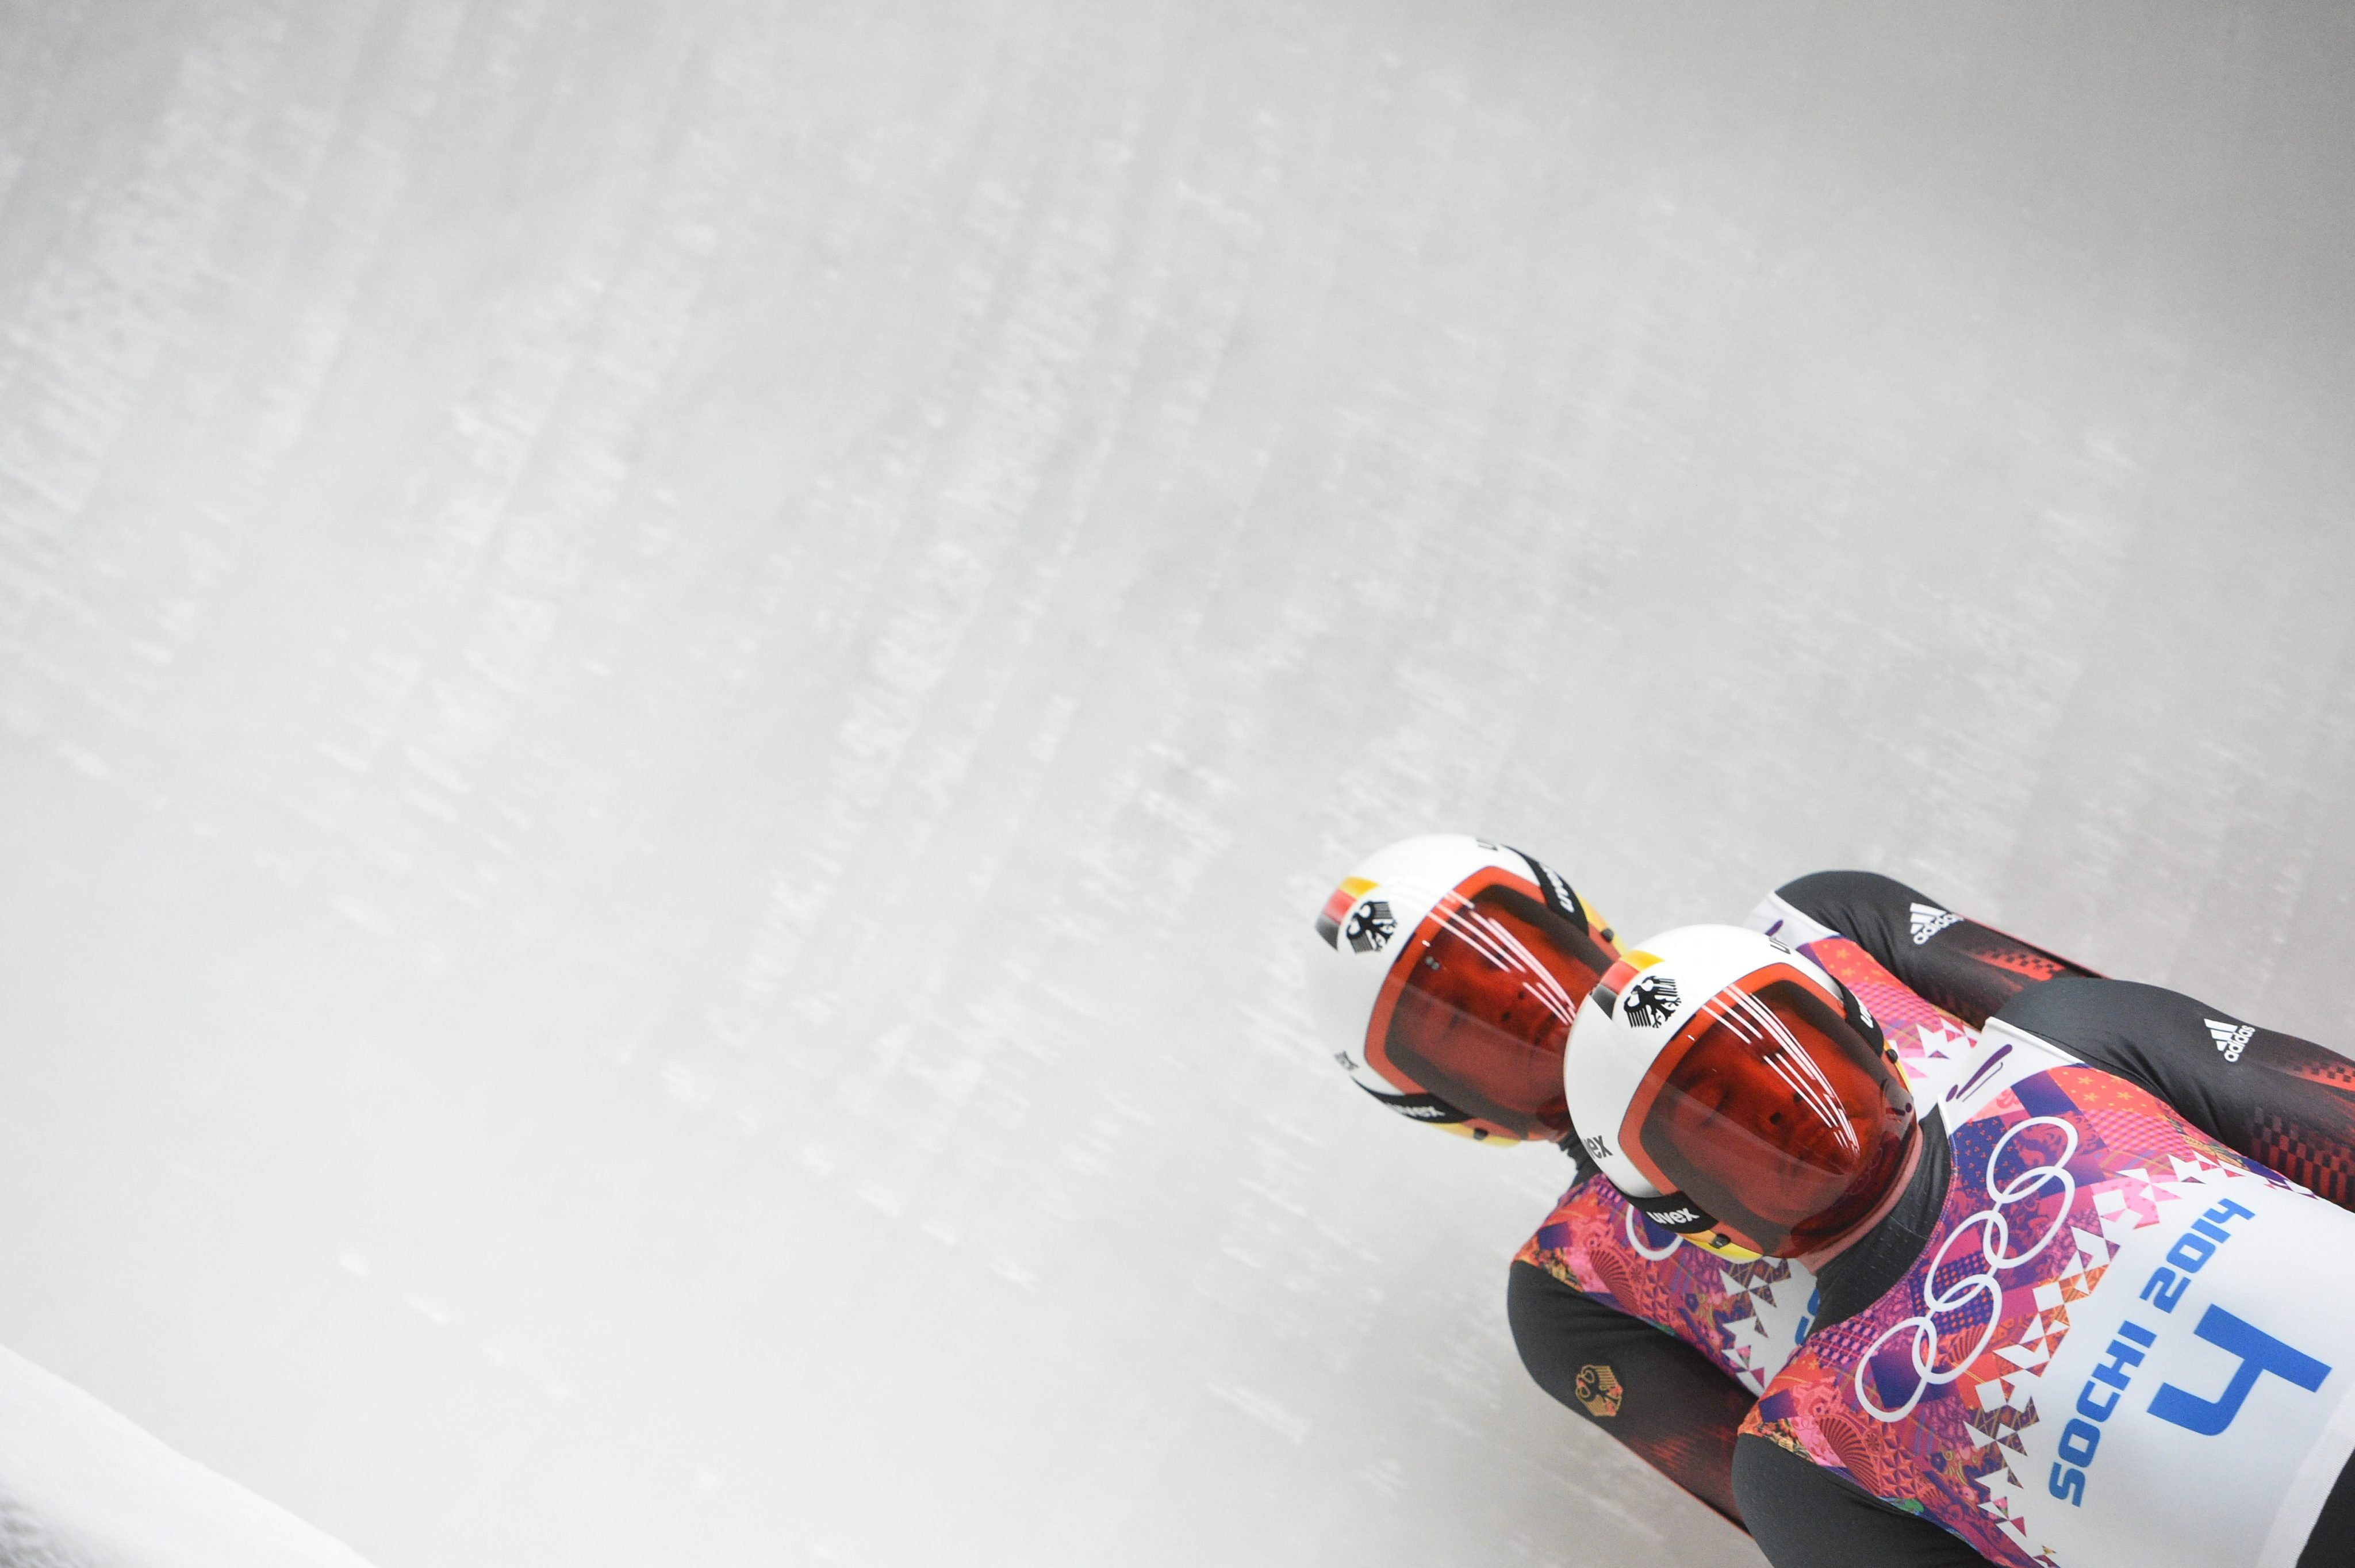 Tobias Wendl and Tobias Arlt of Germany during the first run of the Men's Doubles Luge competition at the Sochi 2014 Olympic Games.